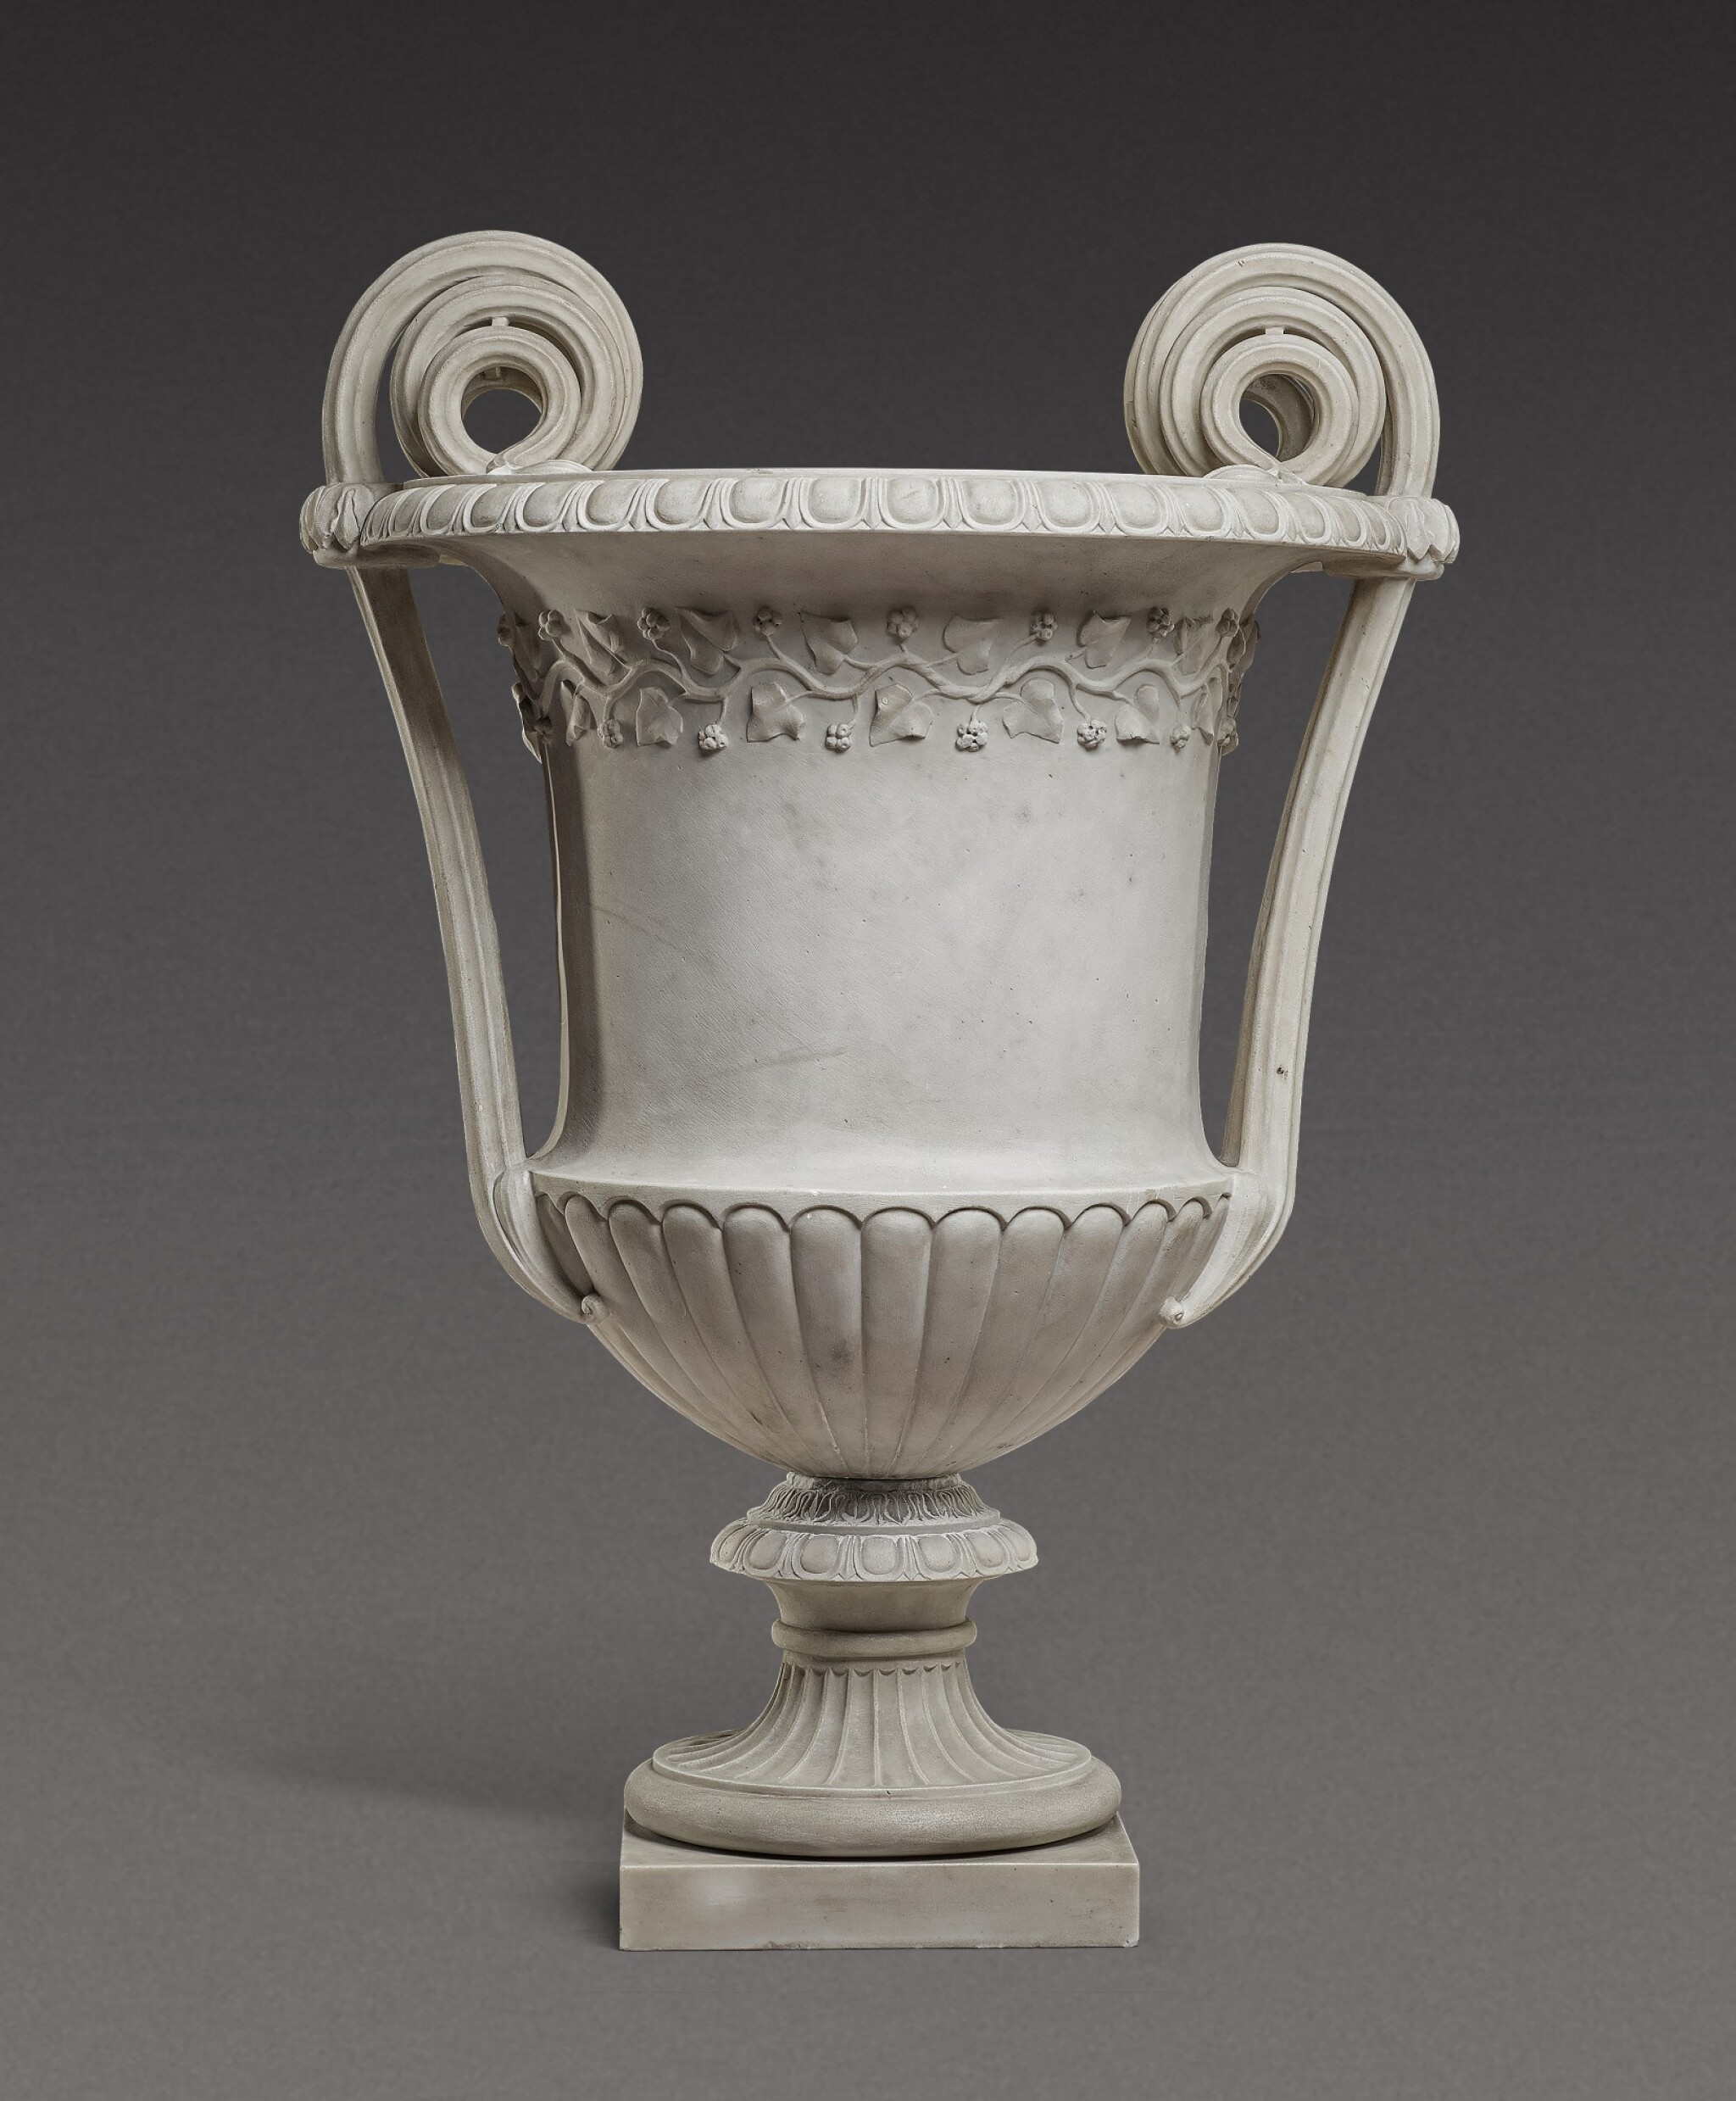 View 1 of Lot 168. An Italian neoclassical carved marble vase, Rome, late 18th century/early 19th century.